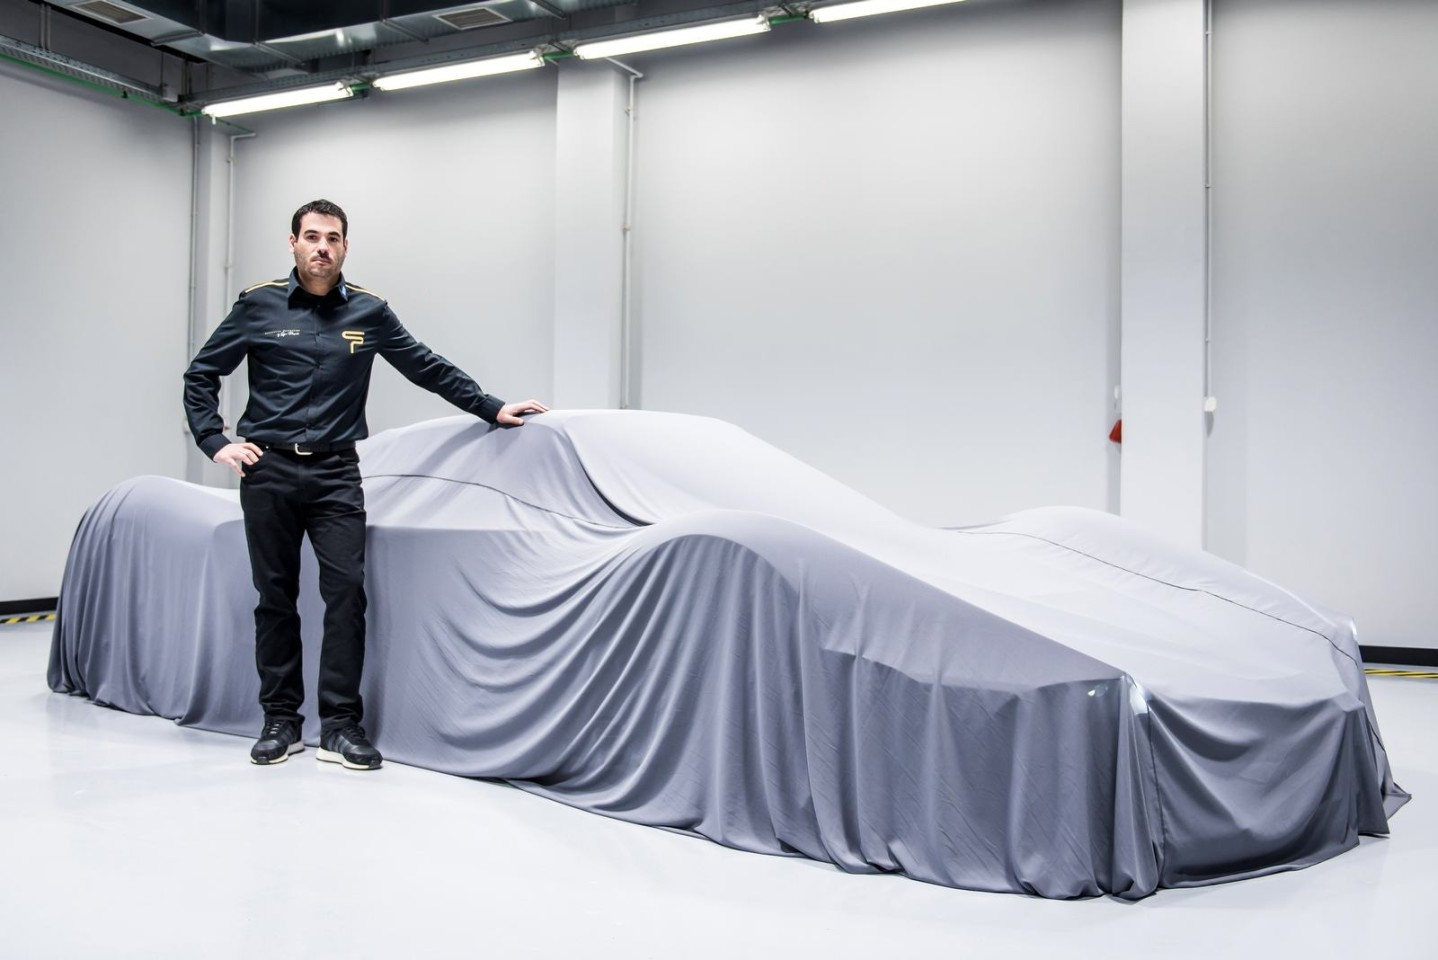 Panopoulos will unveil Project Chaos at next year's Geneva Motor Show